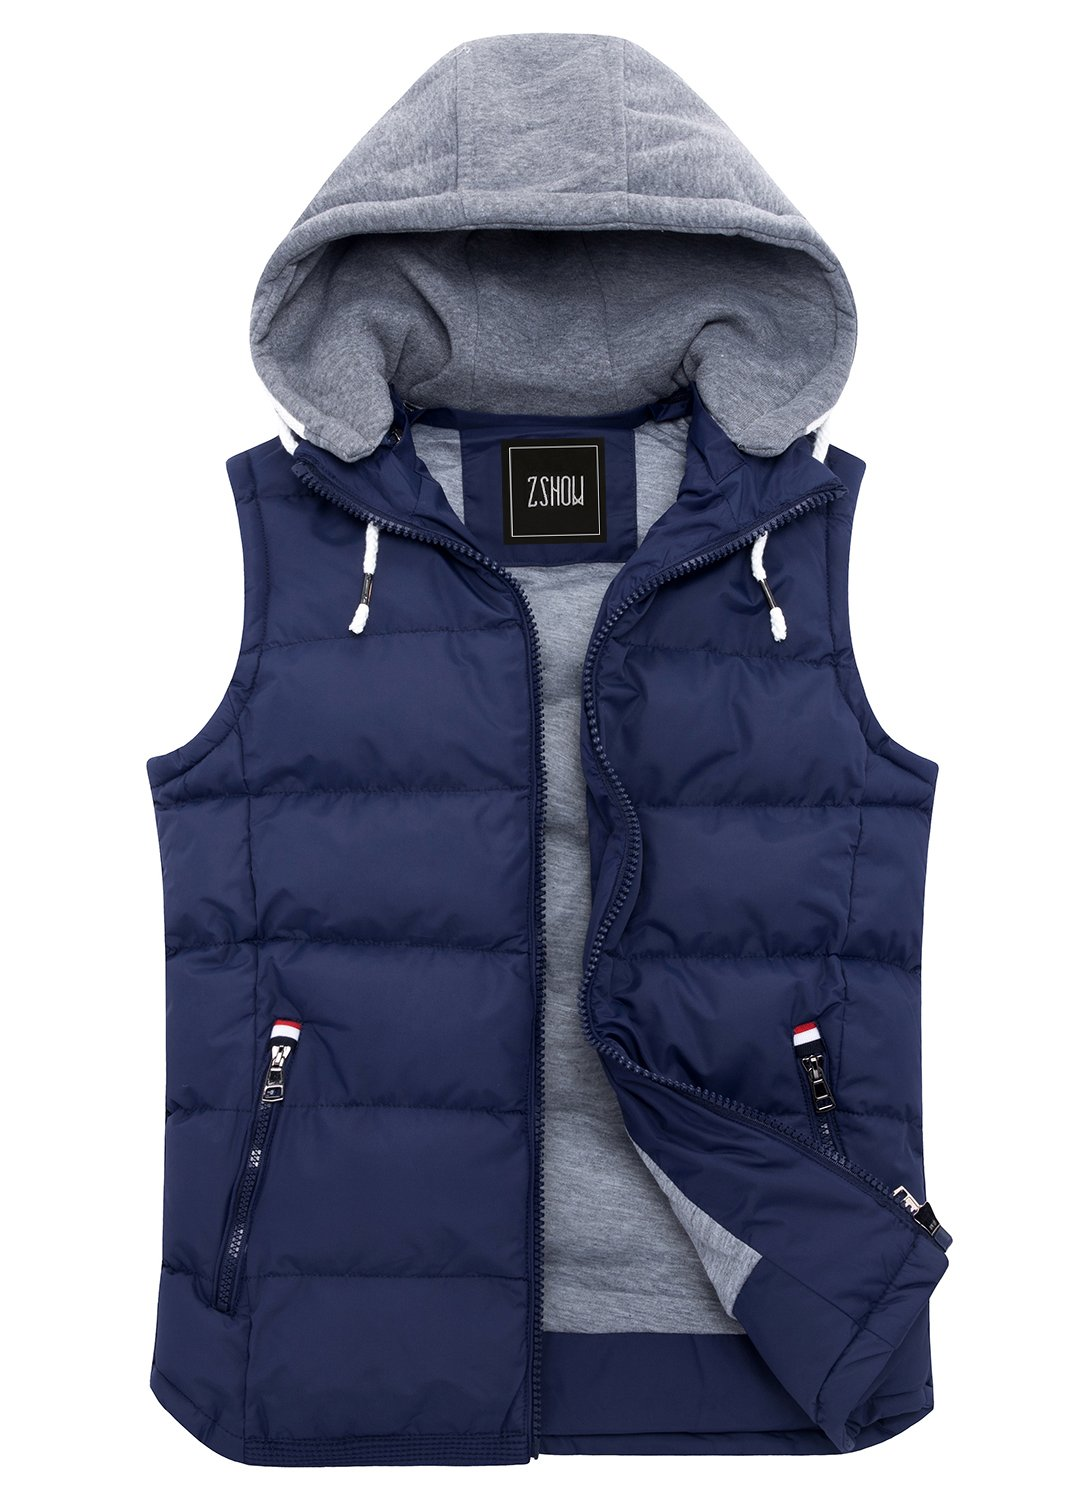 ZSHOW Men's Winter Removable Hooded Cotton-Padded Vests With Pockets(Dark Blue,Medium) by ZSHOW